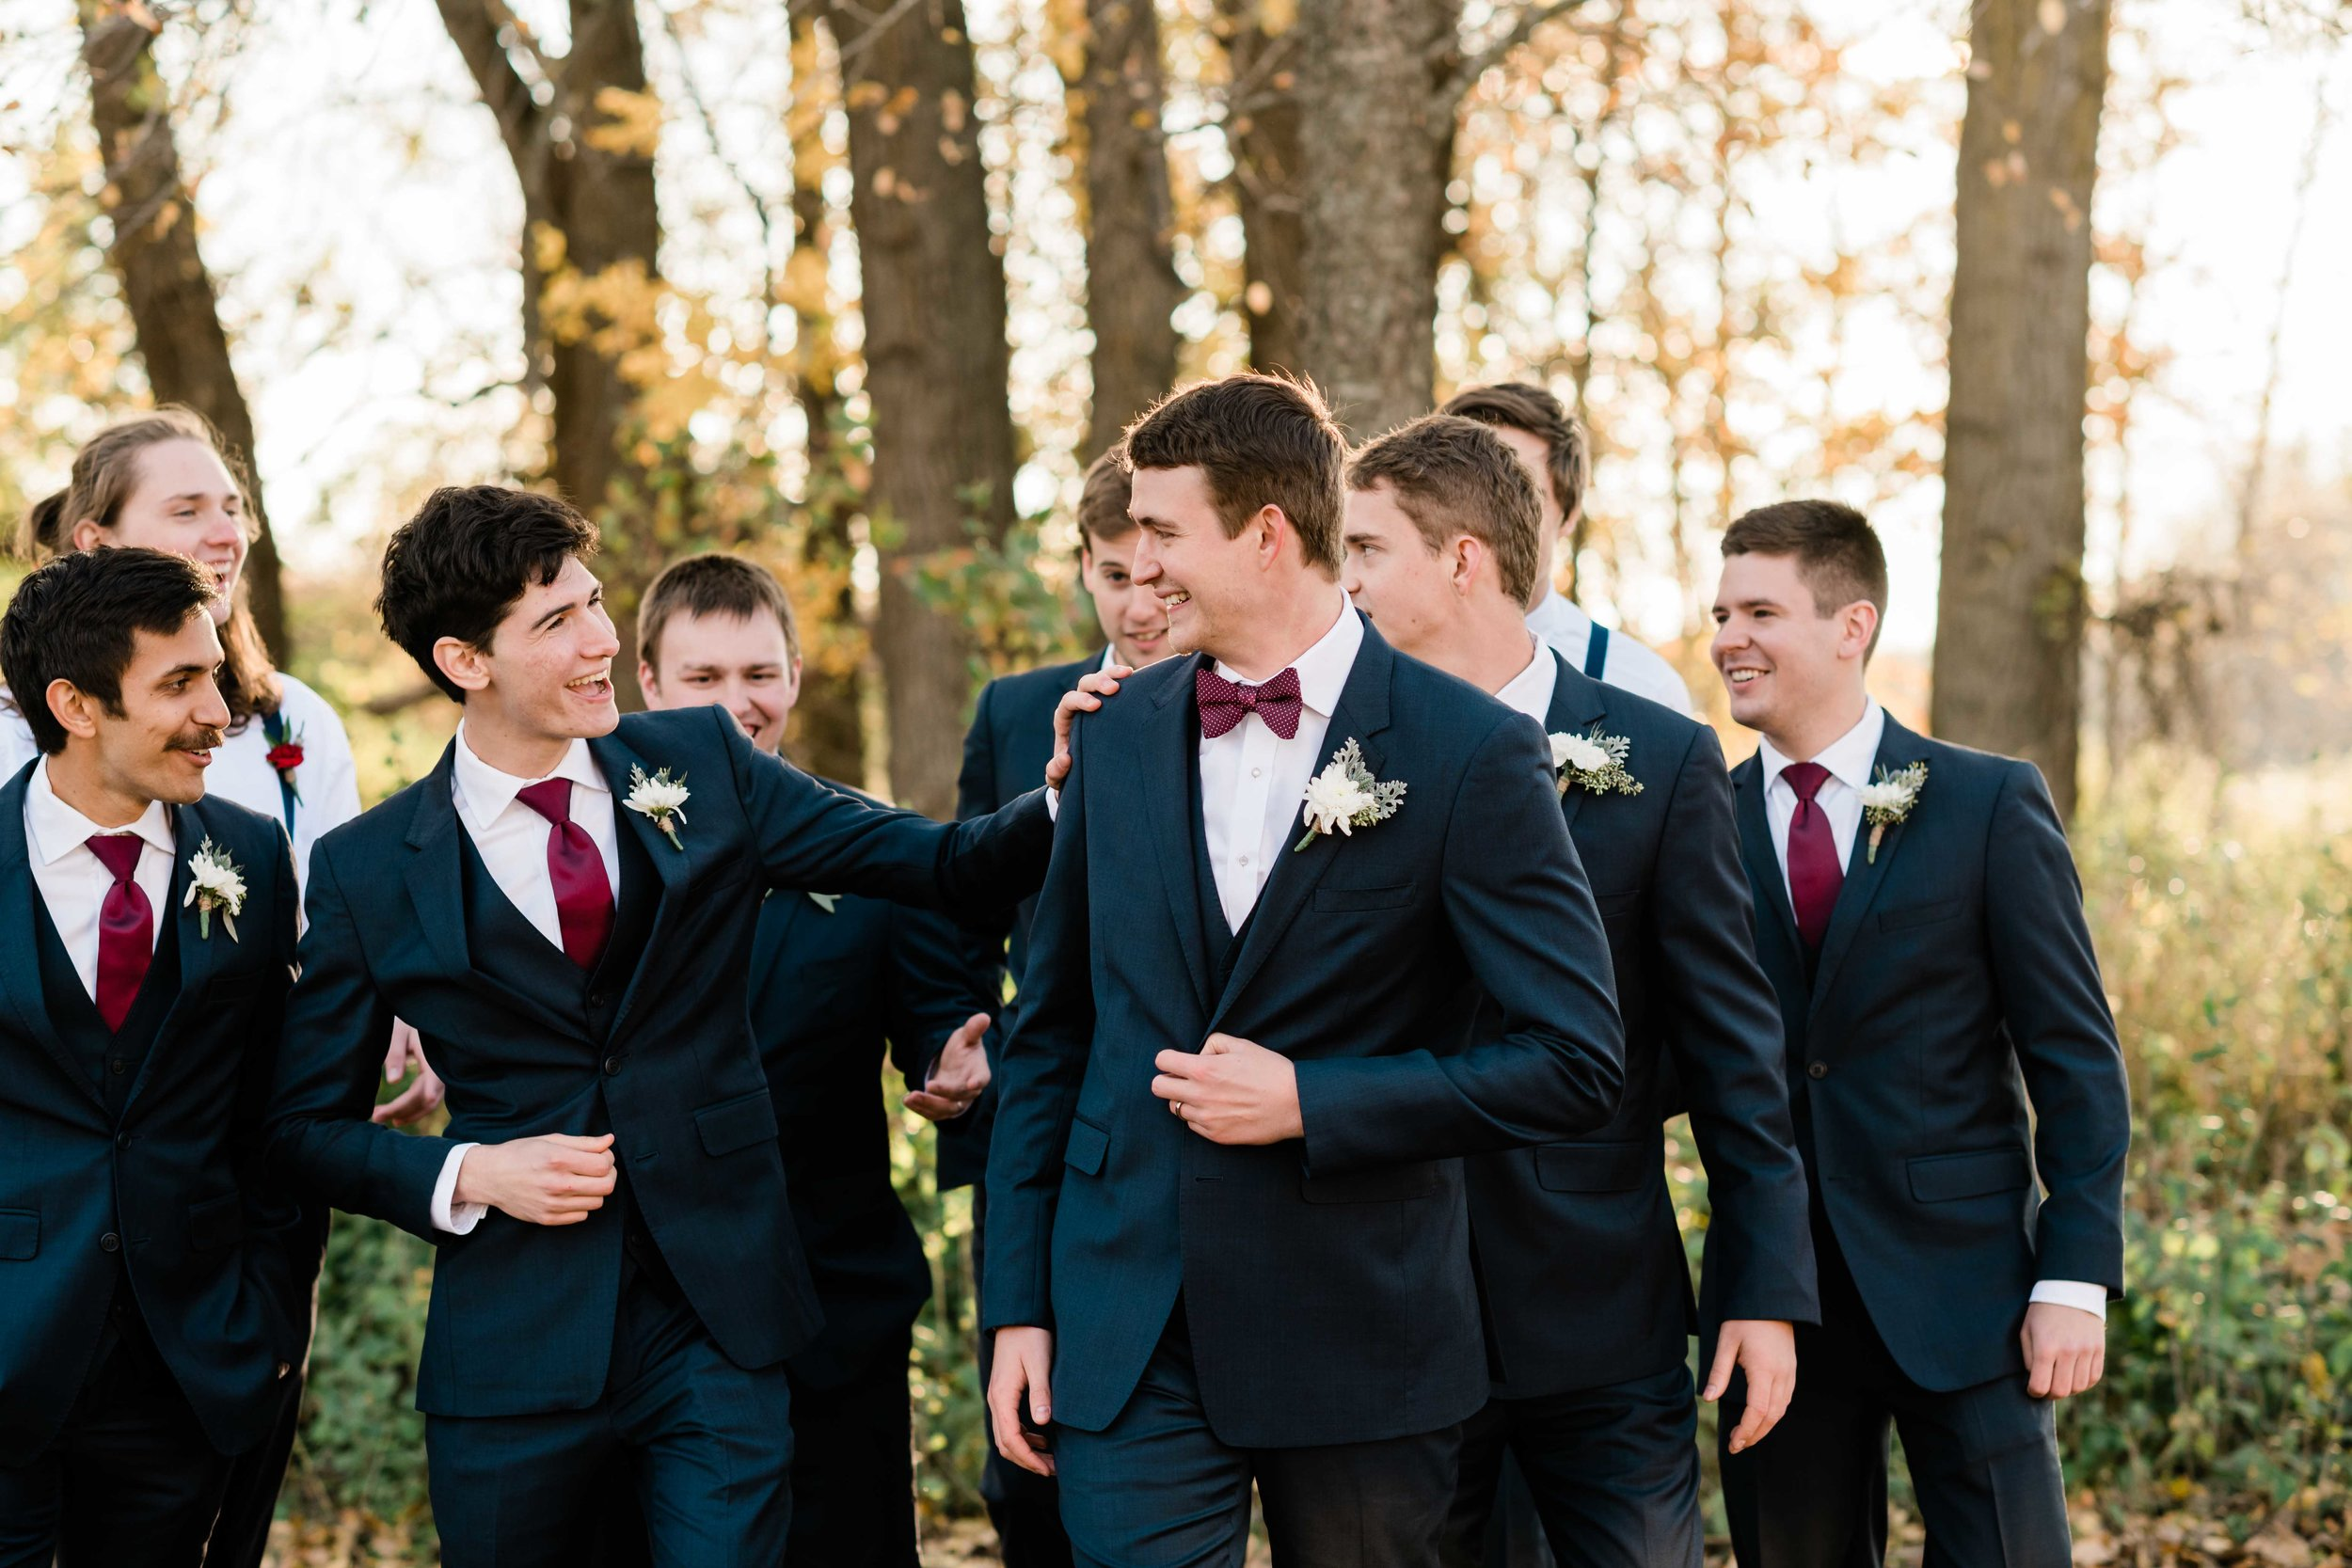 Groom and his groomsmen walking and laughing